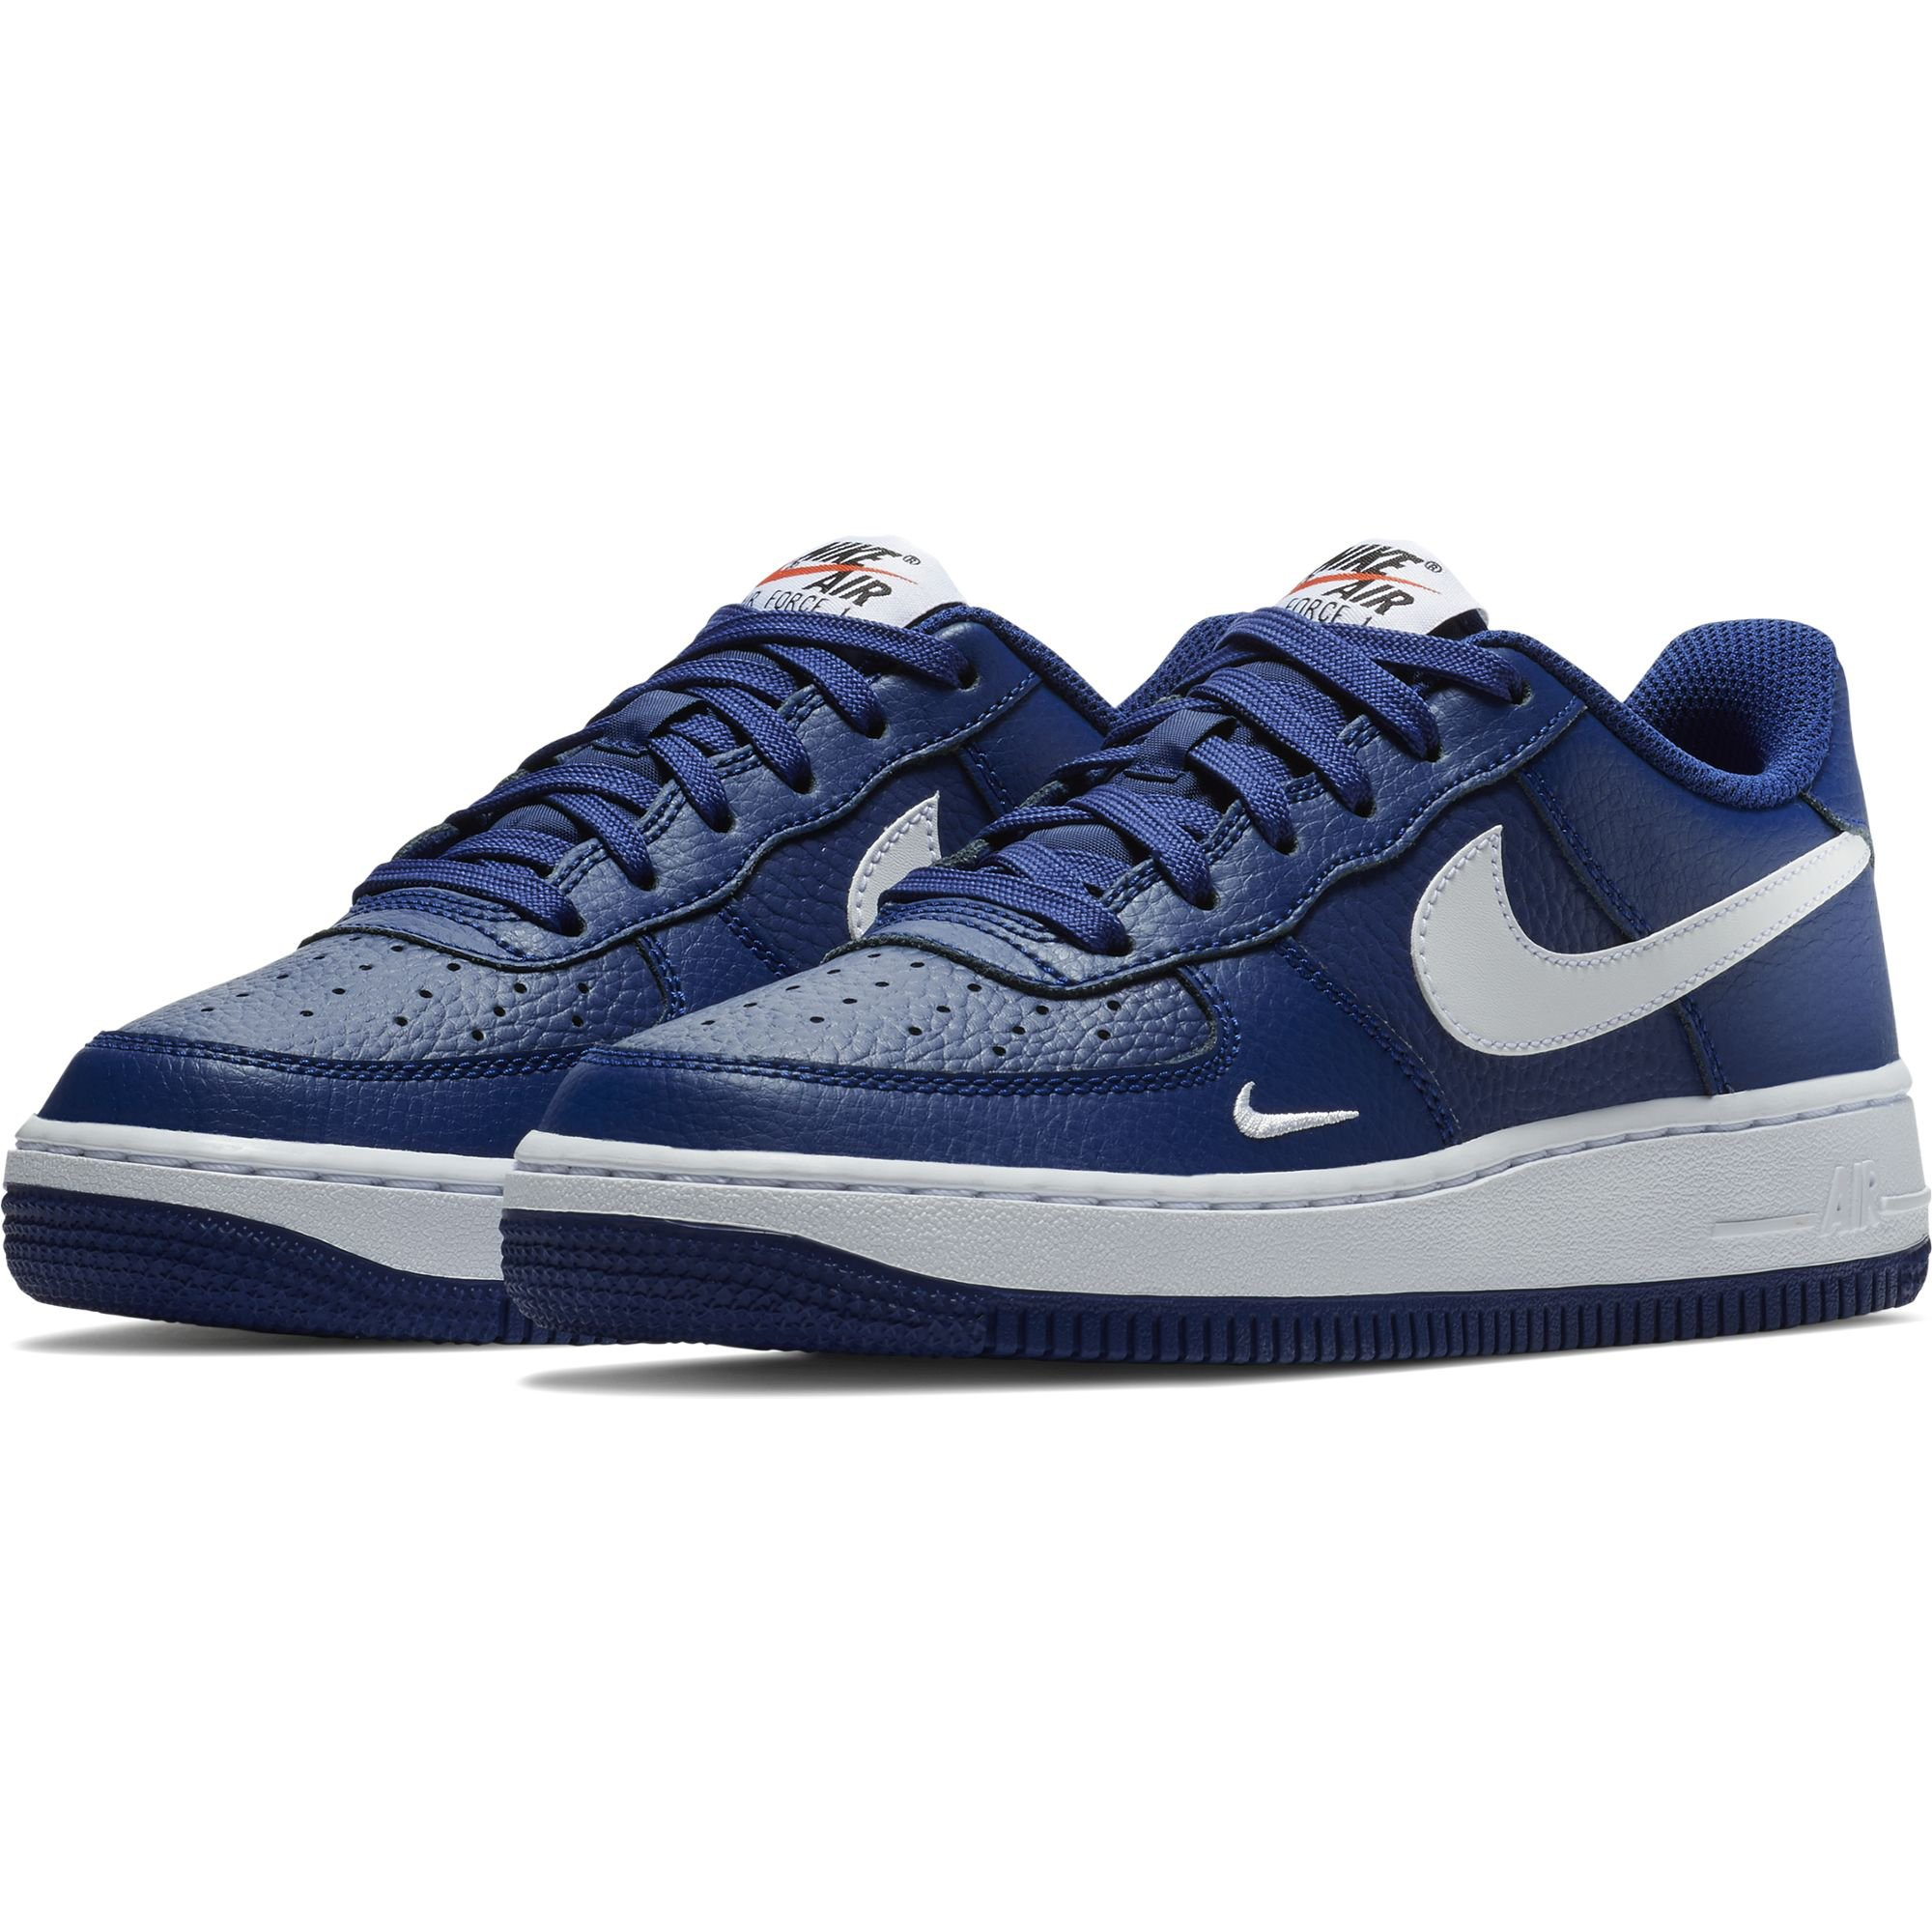 Nike Boy's Air Force 1 Low Basketball Sneaker Deep Royal Blue/White-White 5Y